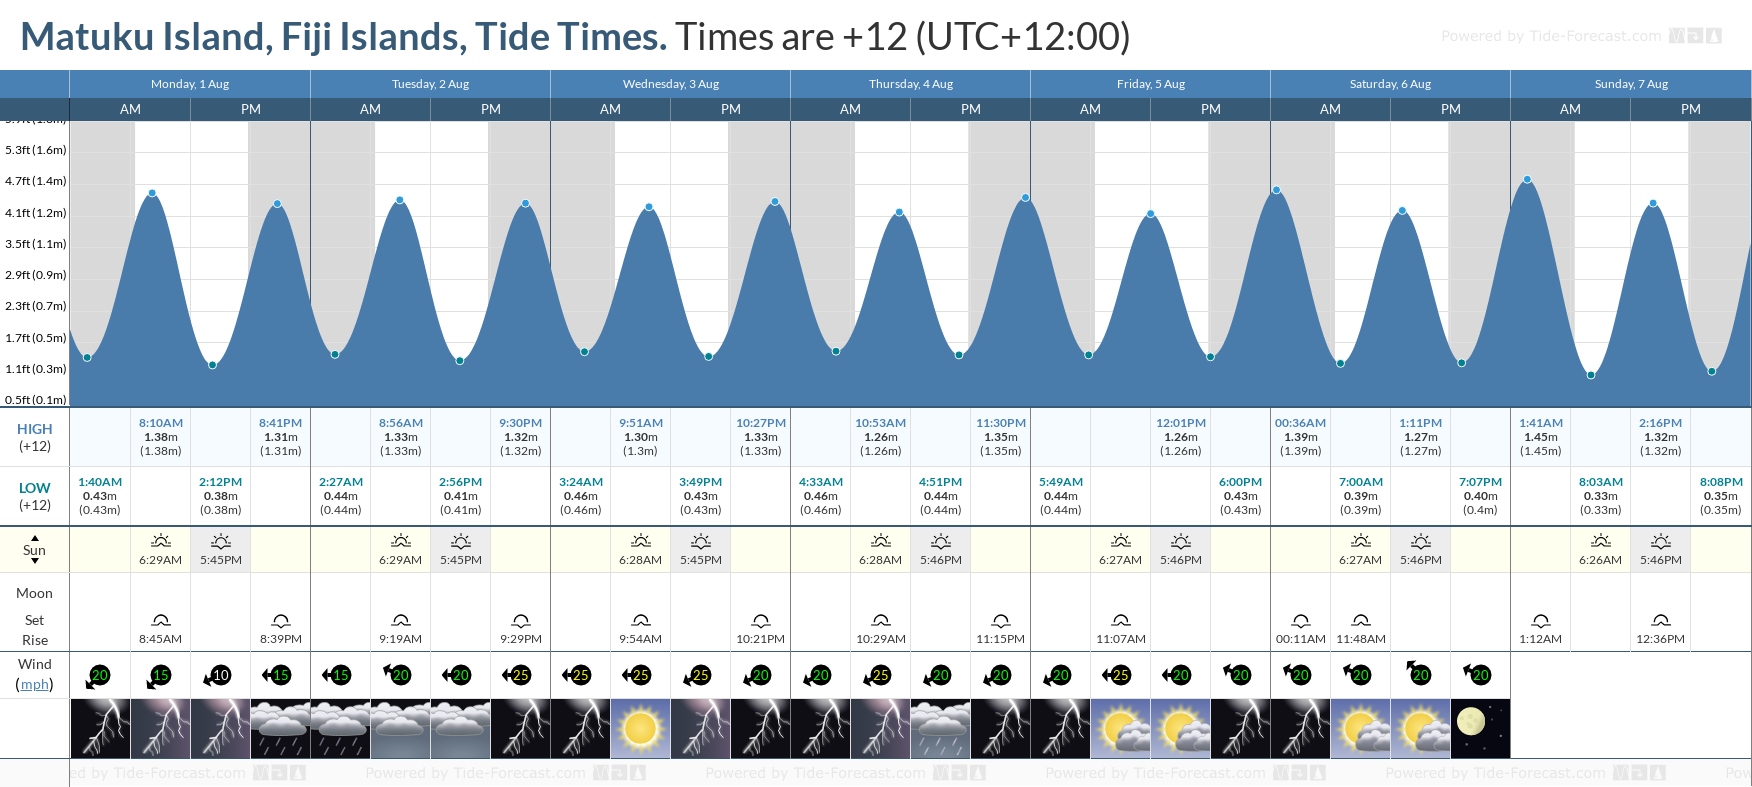 Matuku Island, Fiji Islands Tide Chart including high and low tide tide times for the next 7 days